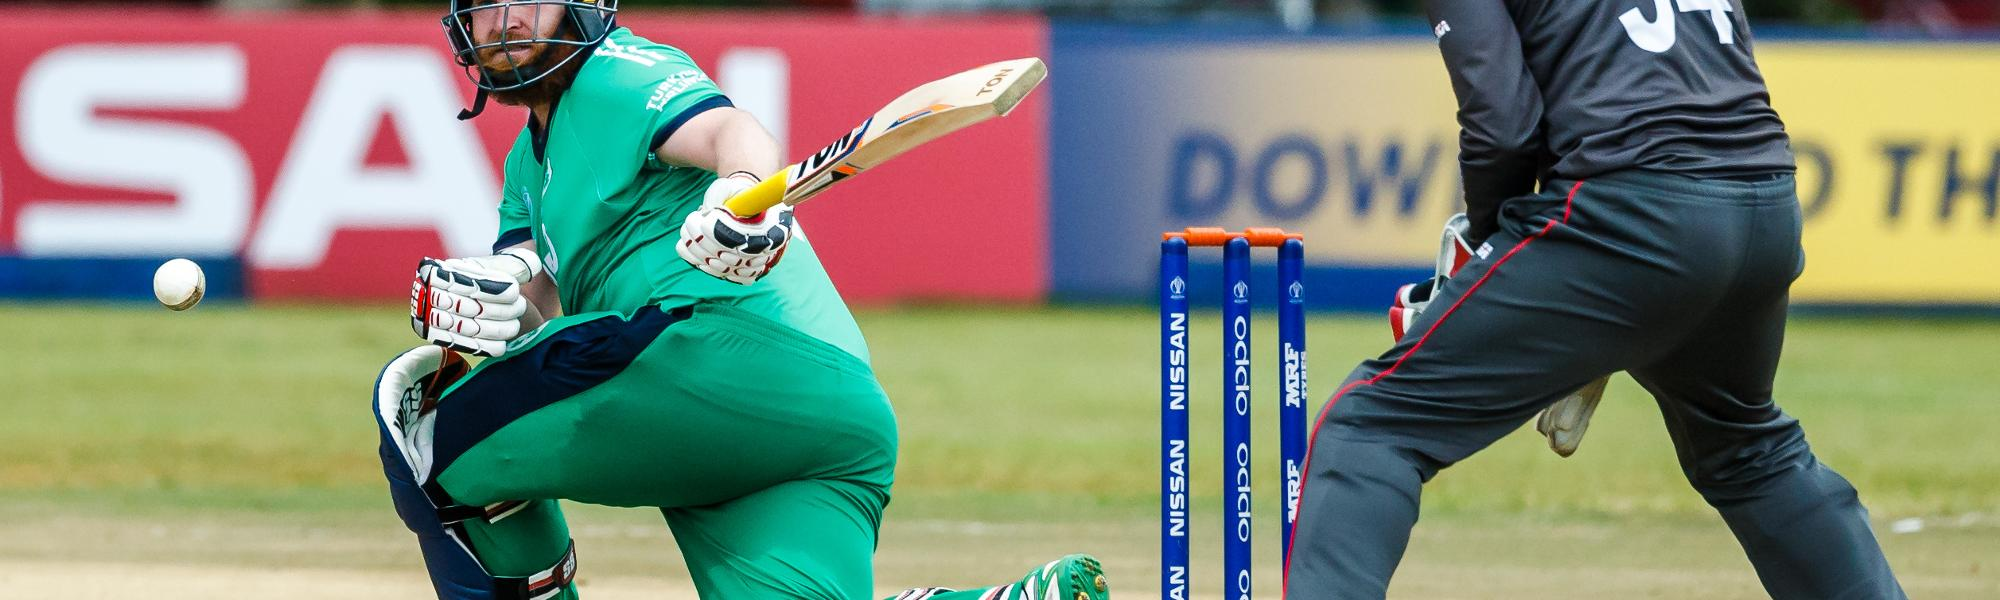 Irish batsman Paul Stirling sweeps the ball during a Group A World Cup Qualifier cricket match between United Arab Emirates and Ireland at Old Hararians Sports Club in Harare March 12 2018 (©ICC).